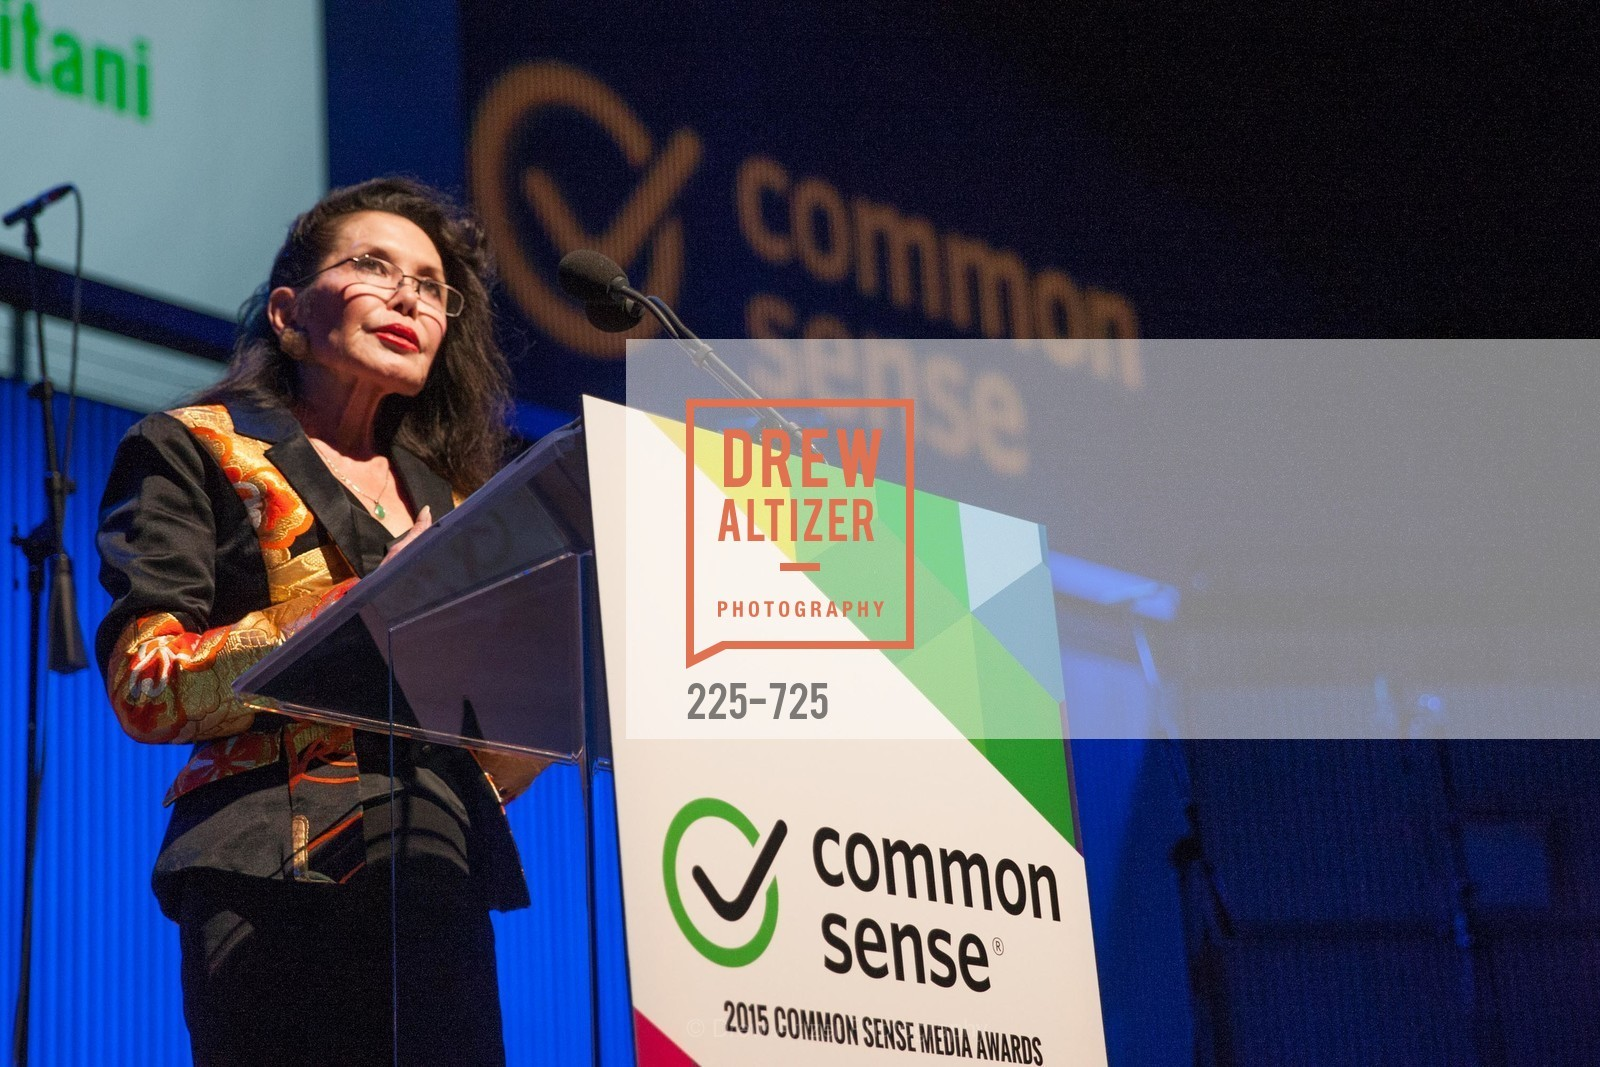 Janice Mirikitani, COMMON SENSE Media Awards 2015, US, May 13th, 2015,Drew Altizer, Drew Altizer Photography, full-service agency, private events, San Francisco photographer, photographer california